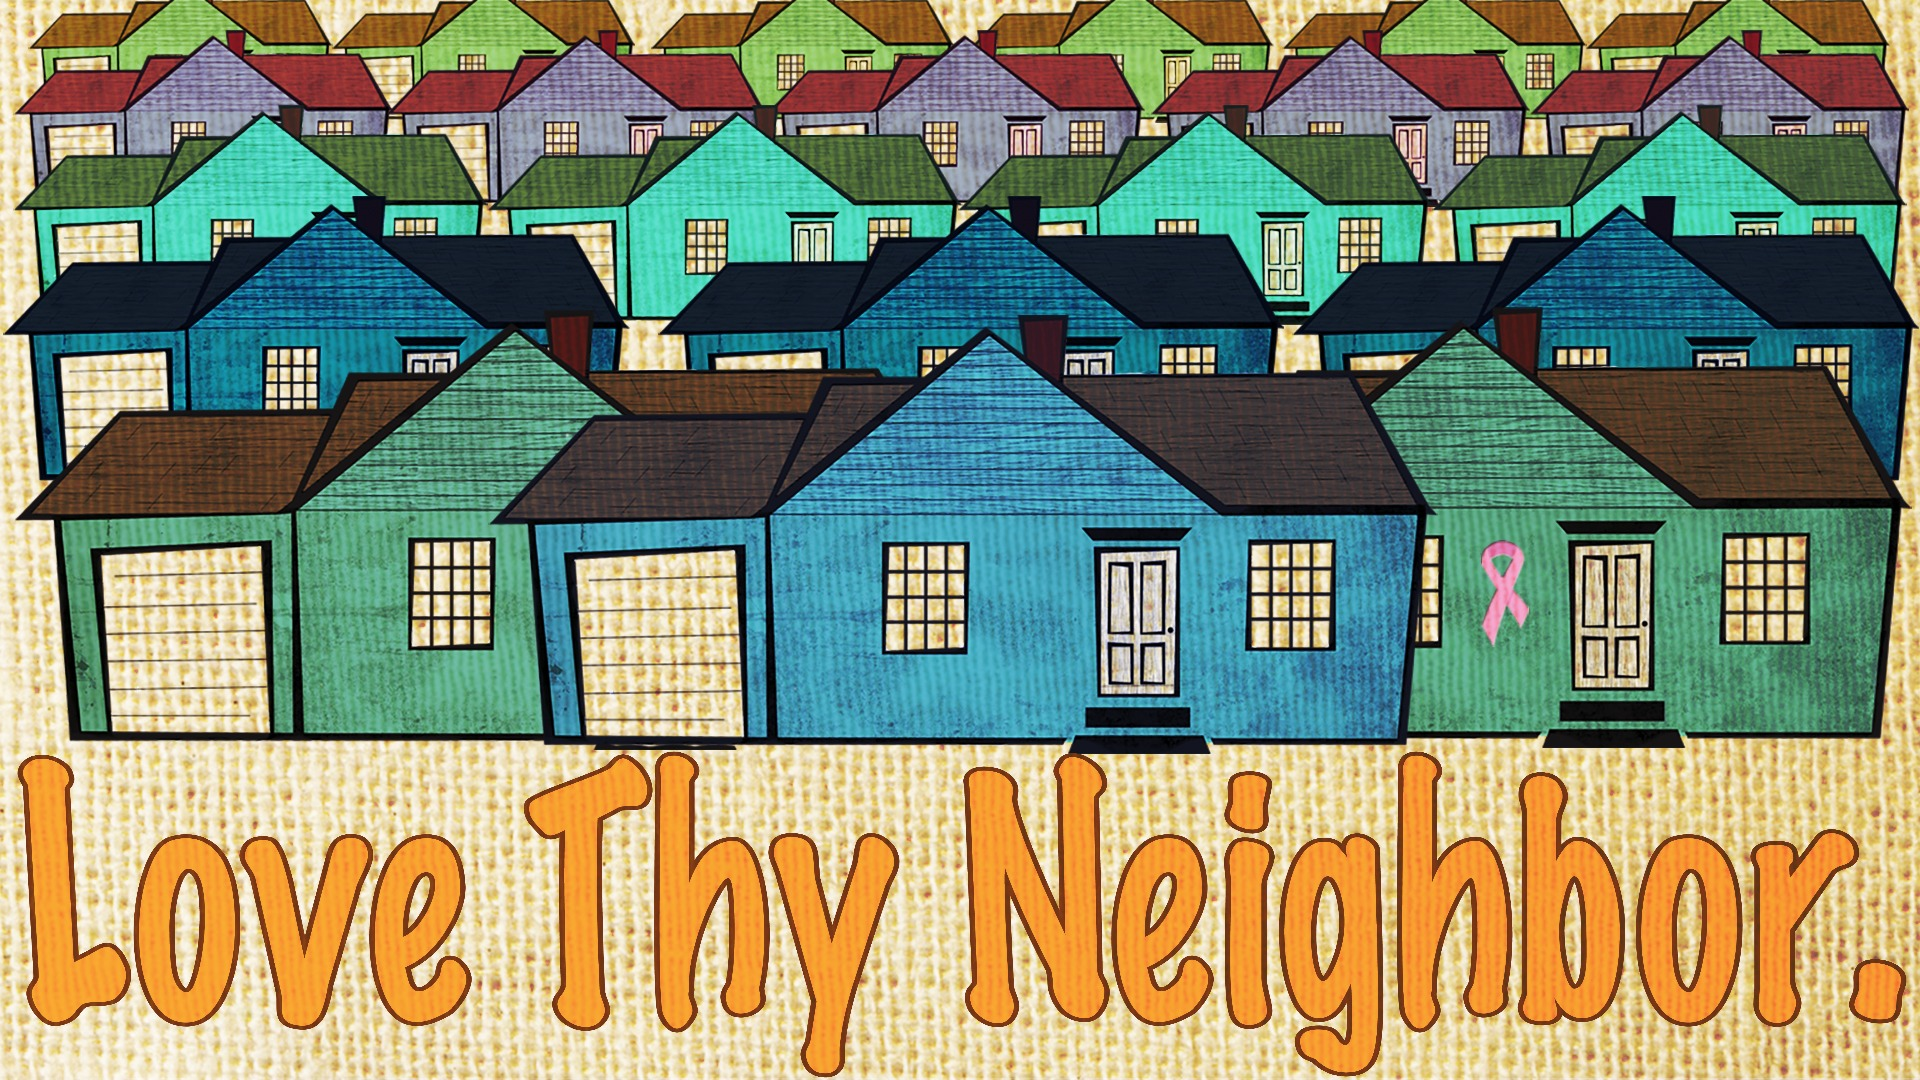 Love Thy Neighbor By Walking The Talk Image